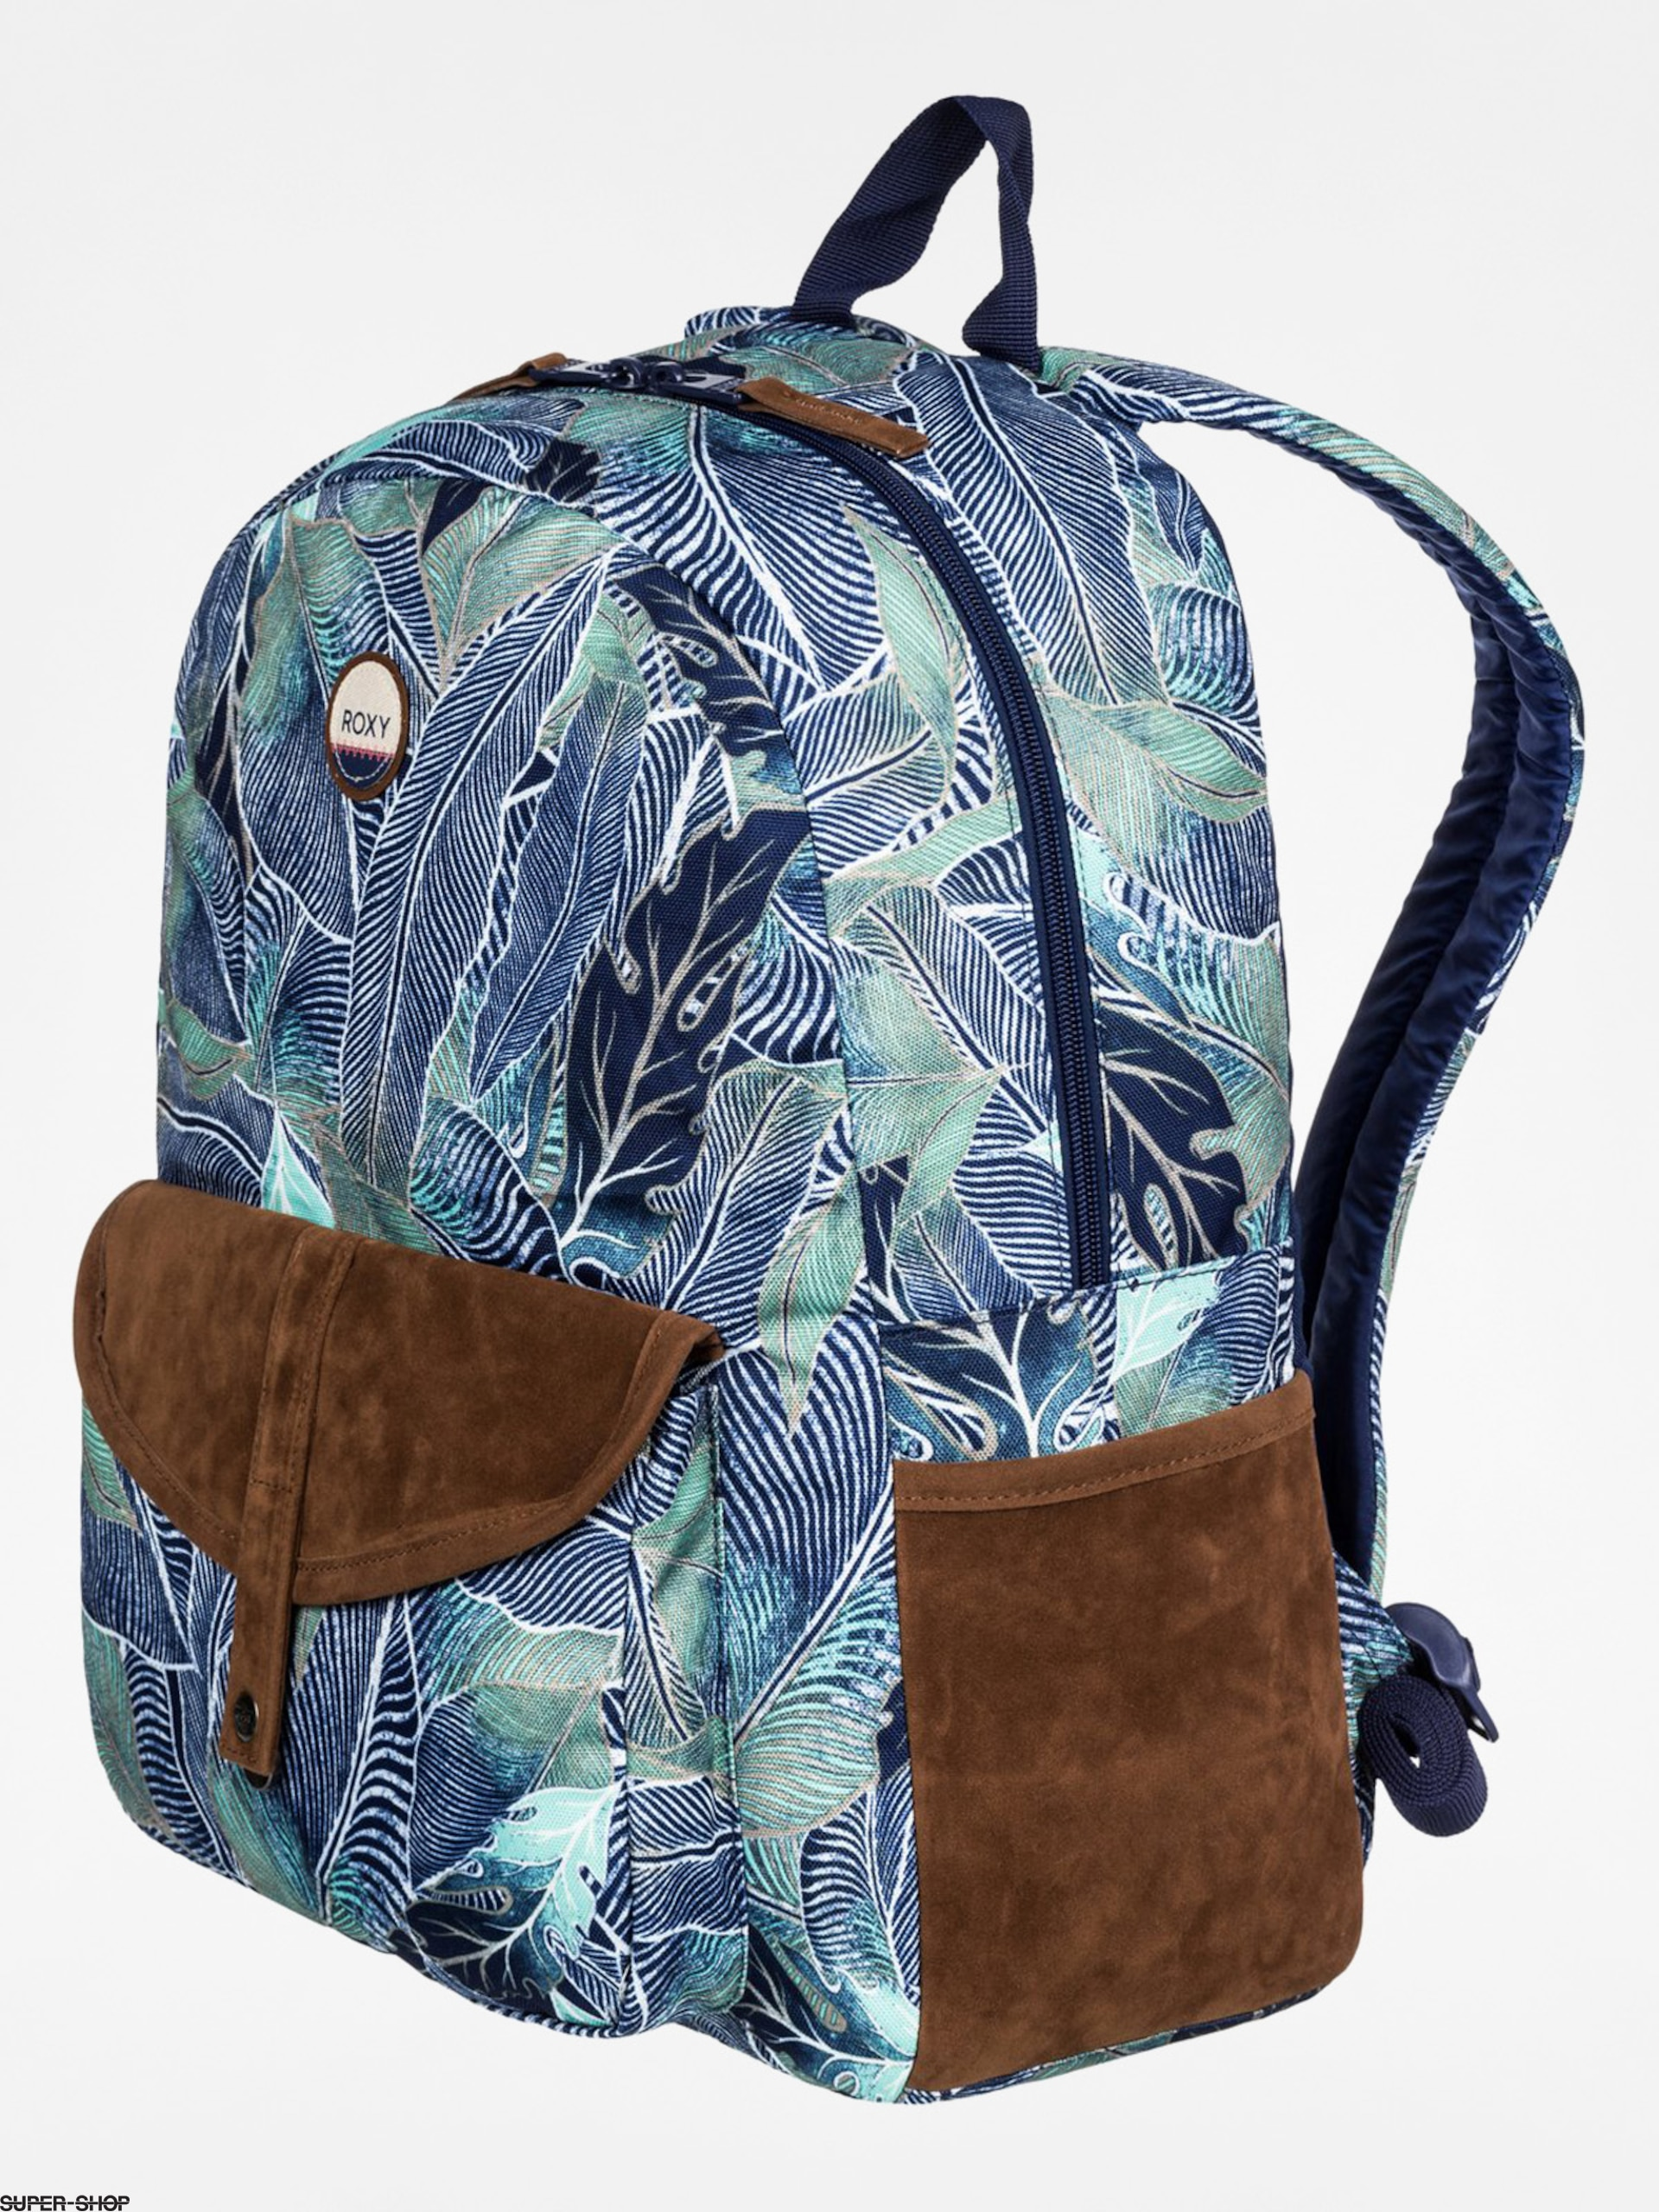 Roxy Rucksack Carribean Wmn (navy/brown/green)